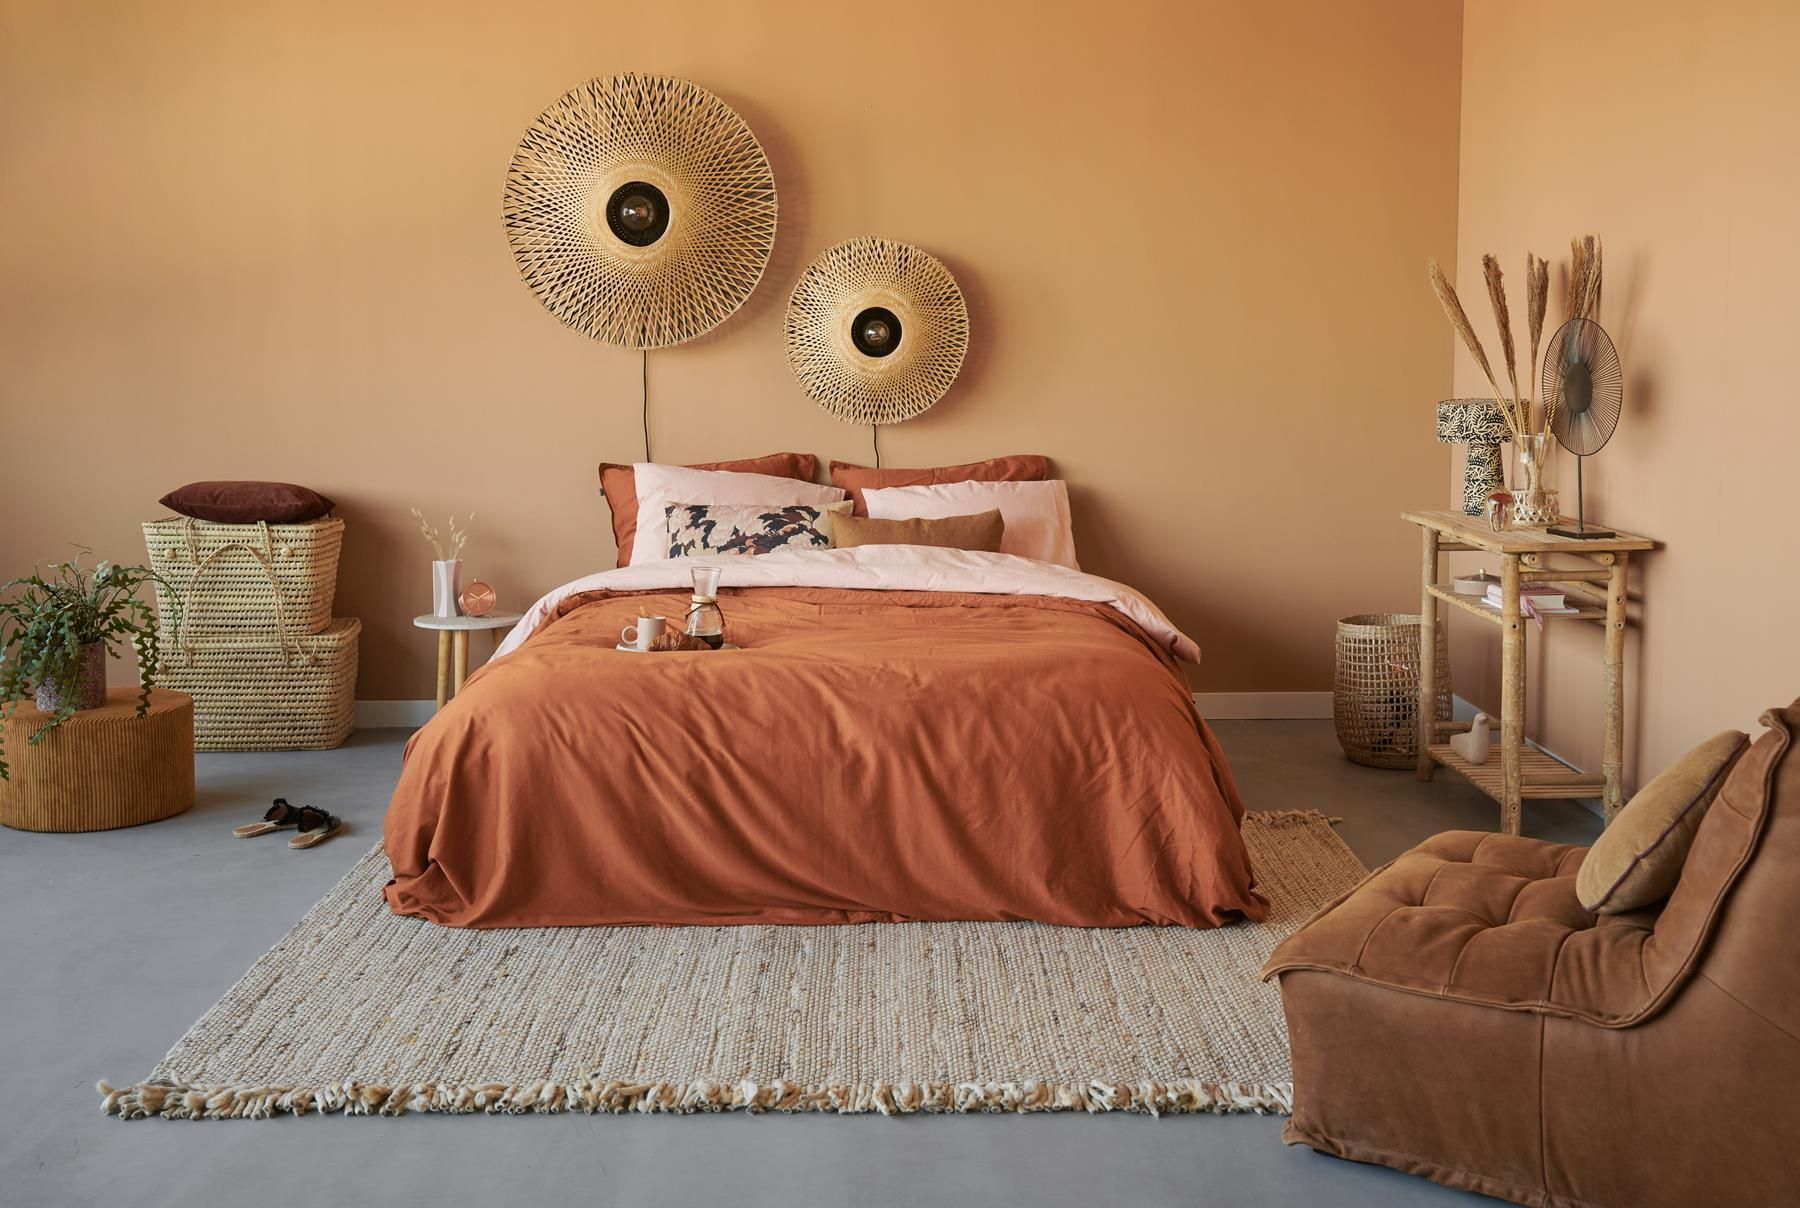 Shop de look: warm terra & pink in de slaapkamer